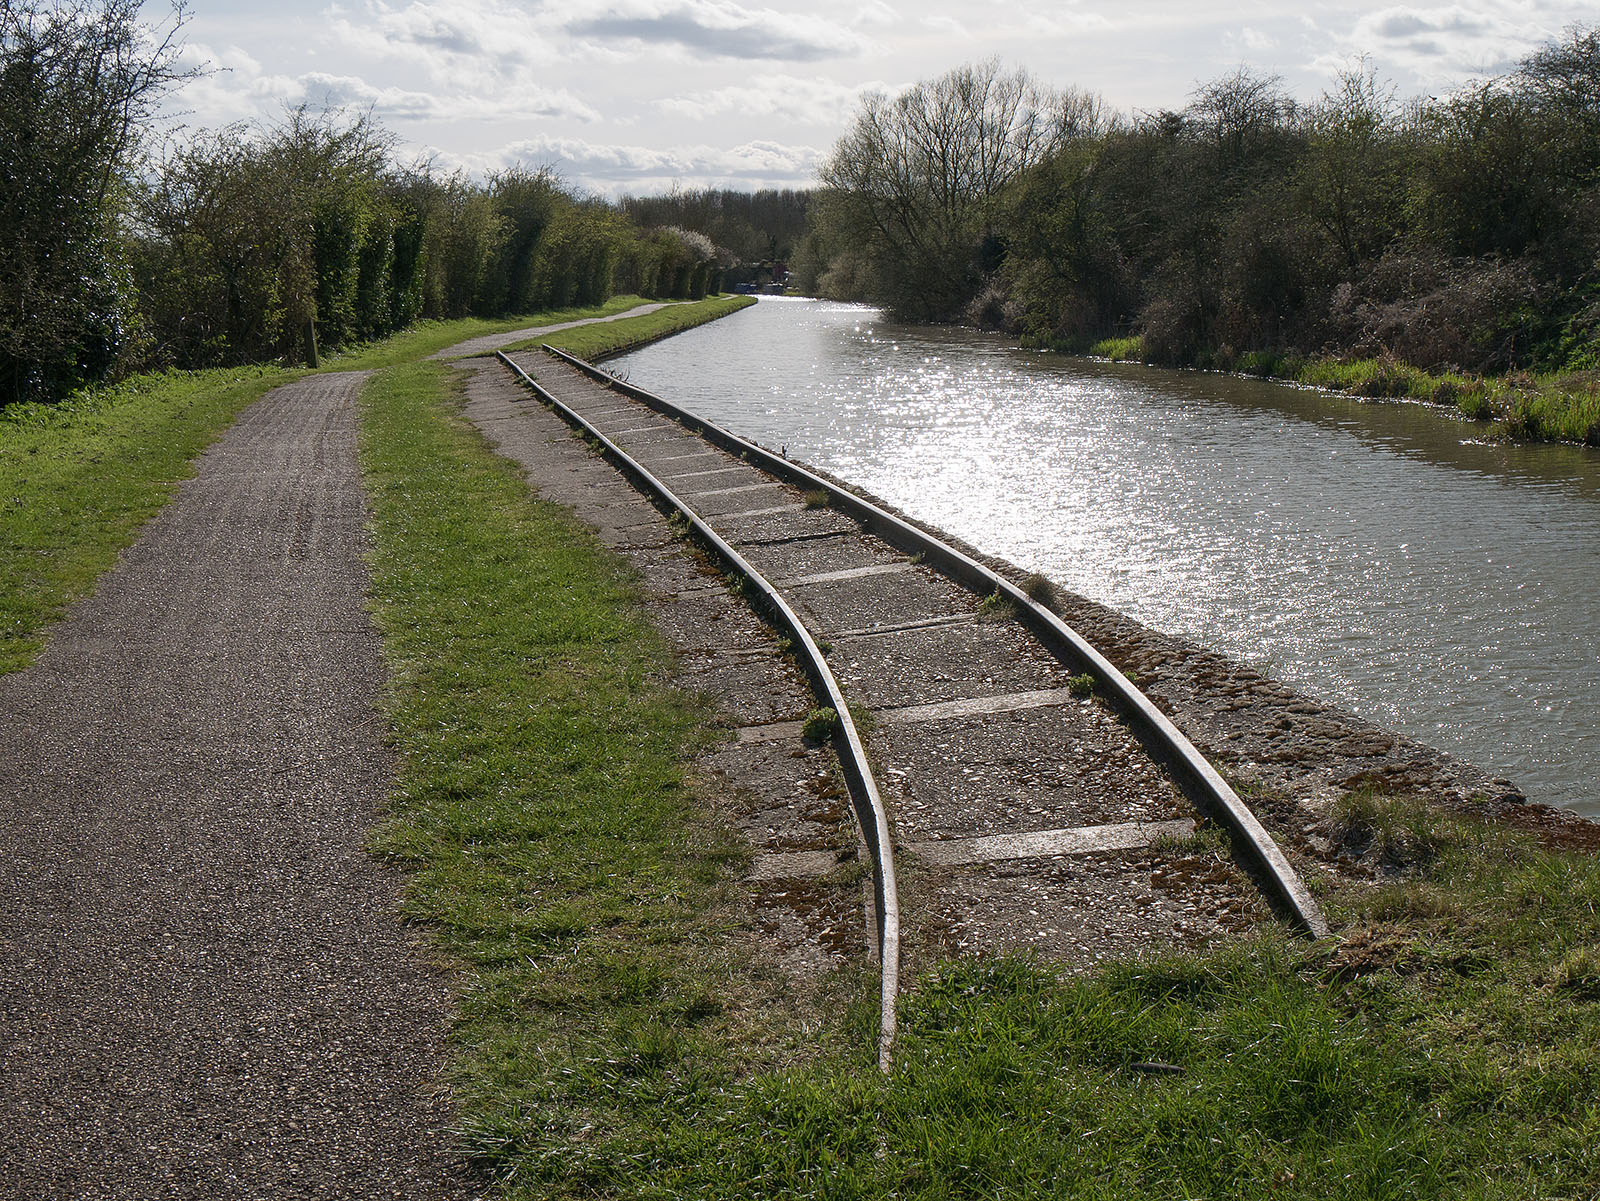 Mysterious tracks curve away from the canal